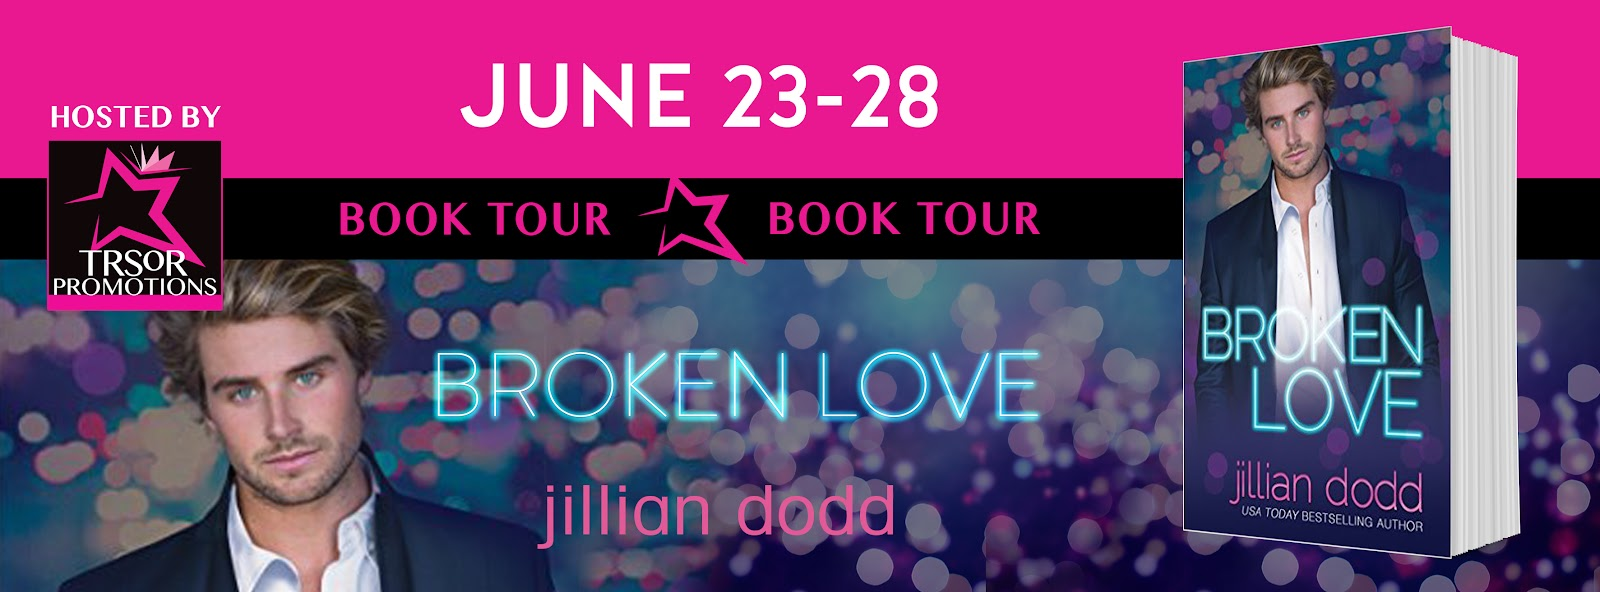 BROKEN_LOVE_BOOK_TOUR.jpg